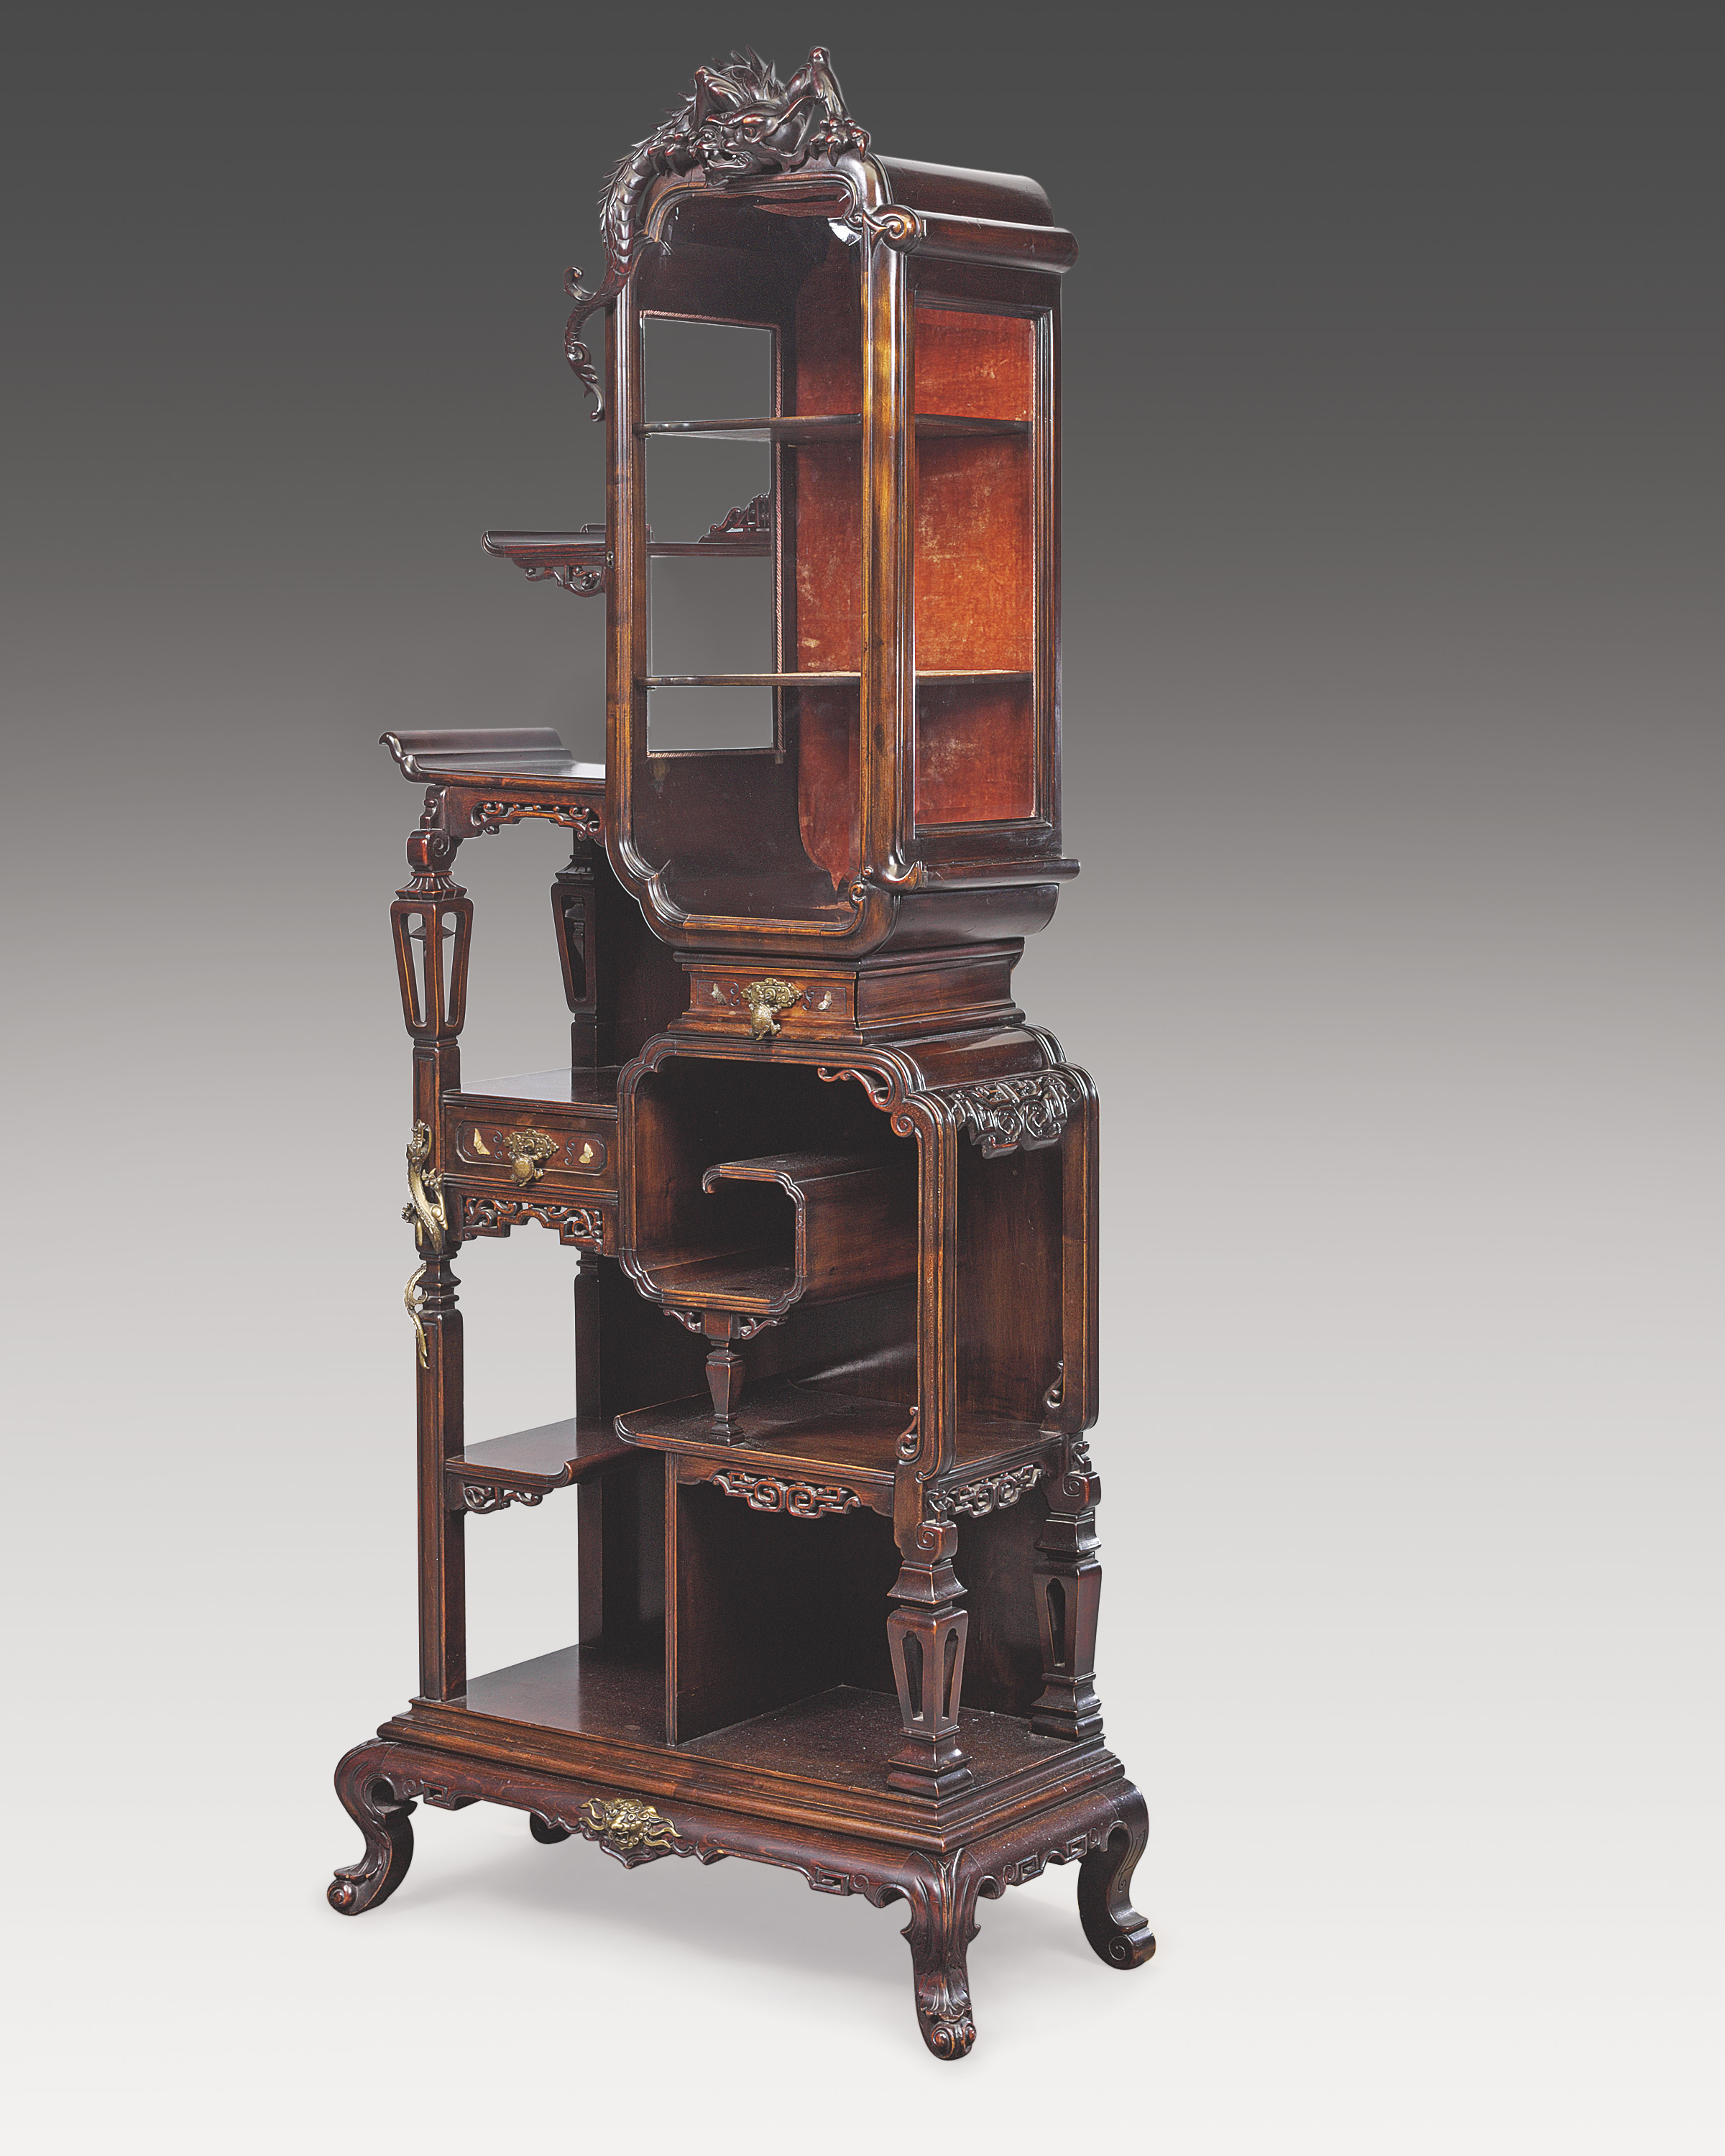 A FRENCH 'JAPONISME' LACQUERED-BRONZE-MOUNTED MAHOGANY VITRINE-CABINET